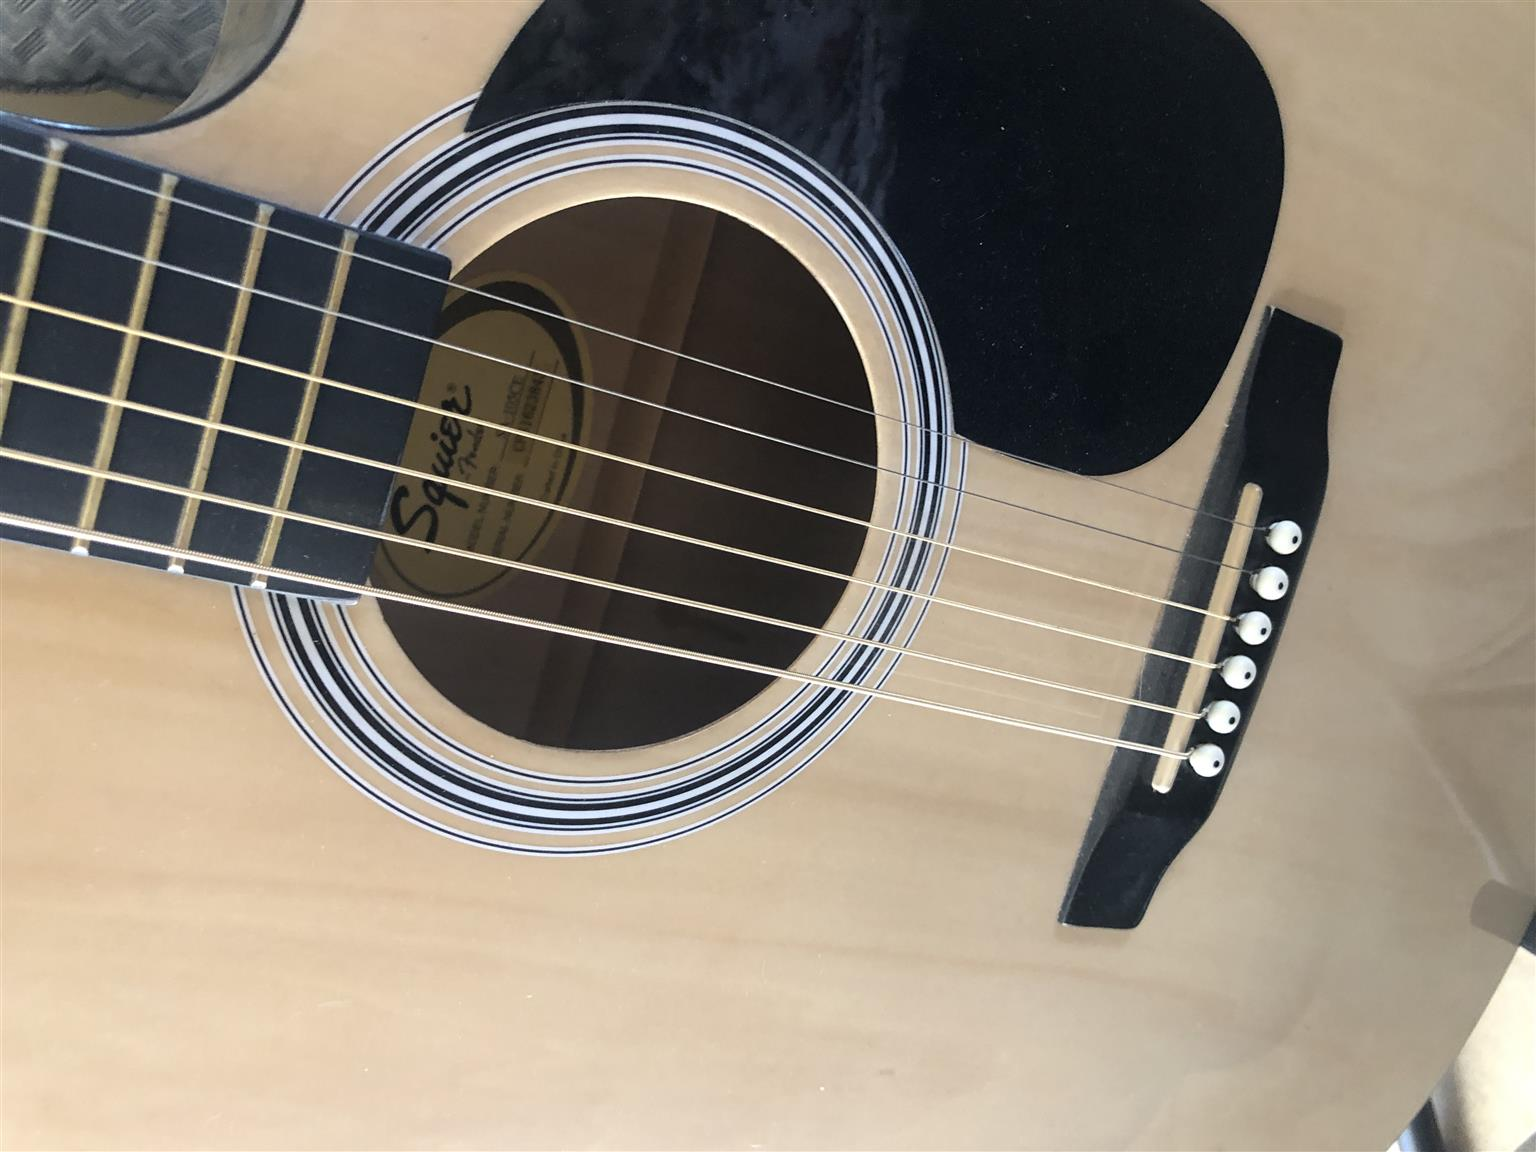 Brand new Fender Acoustic Electric Guitar